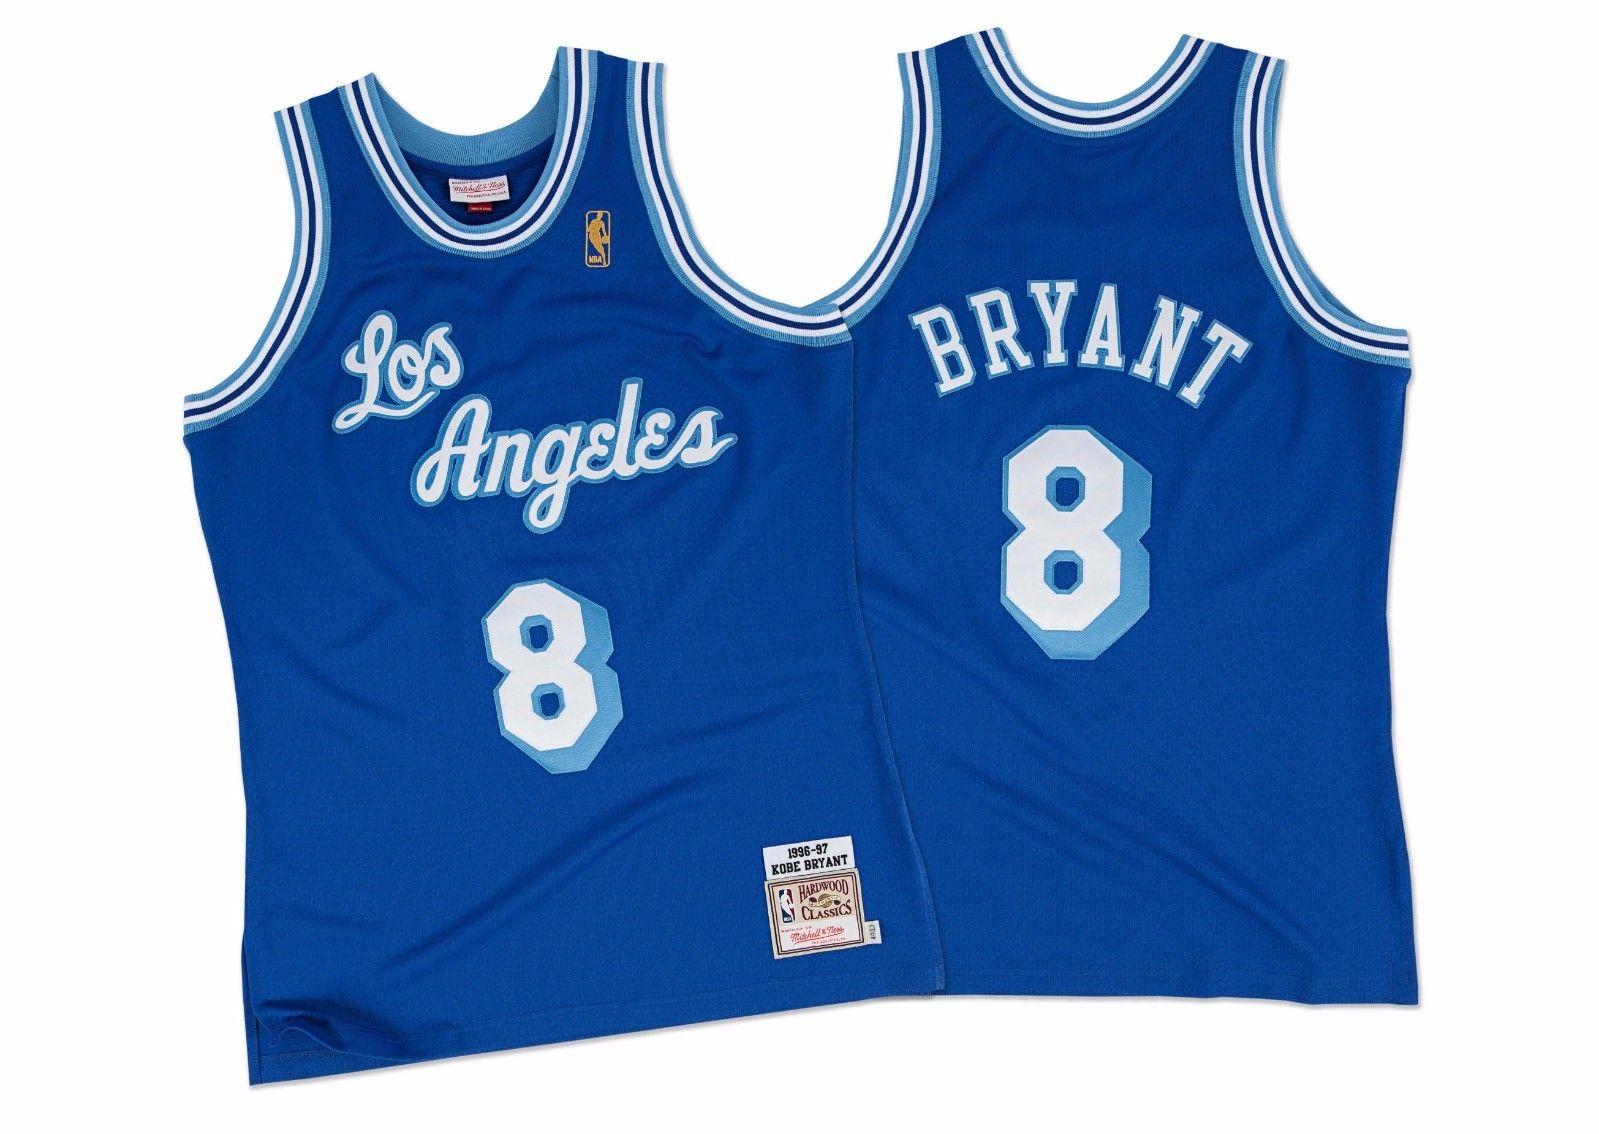 hot sale online 38389 9e94f Kobe Bryant 1996-97 Authentic Jersey Los Angeles Lakers